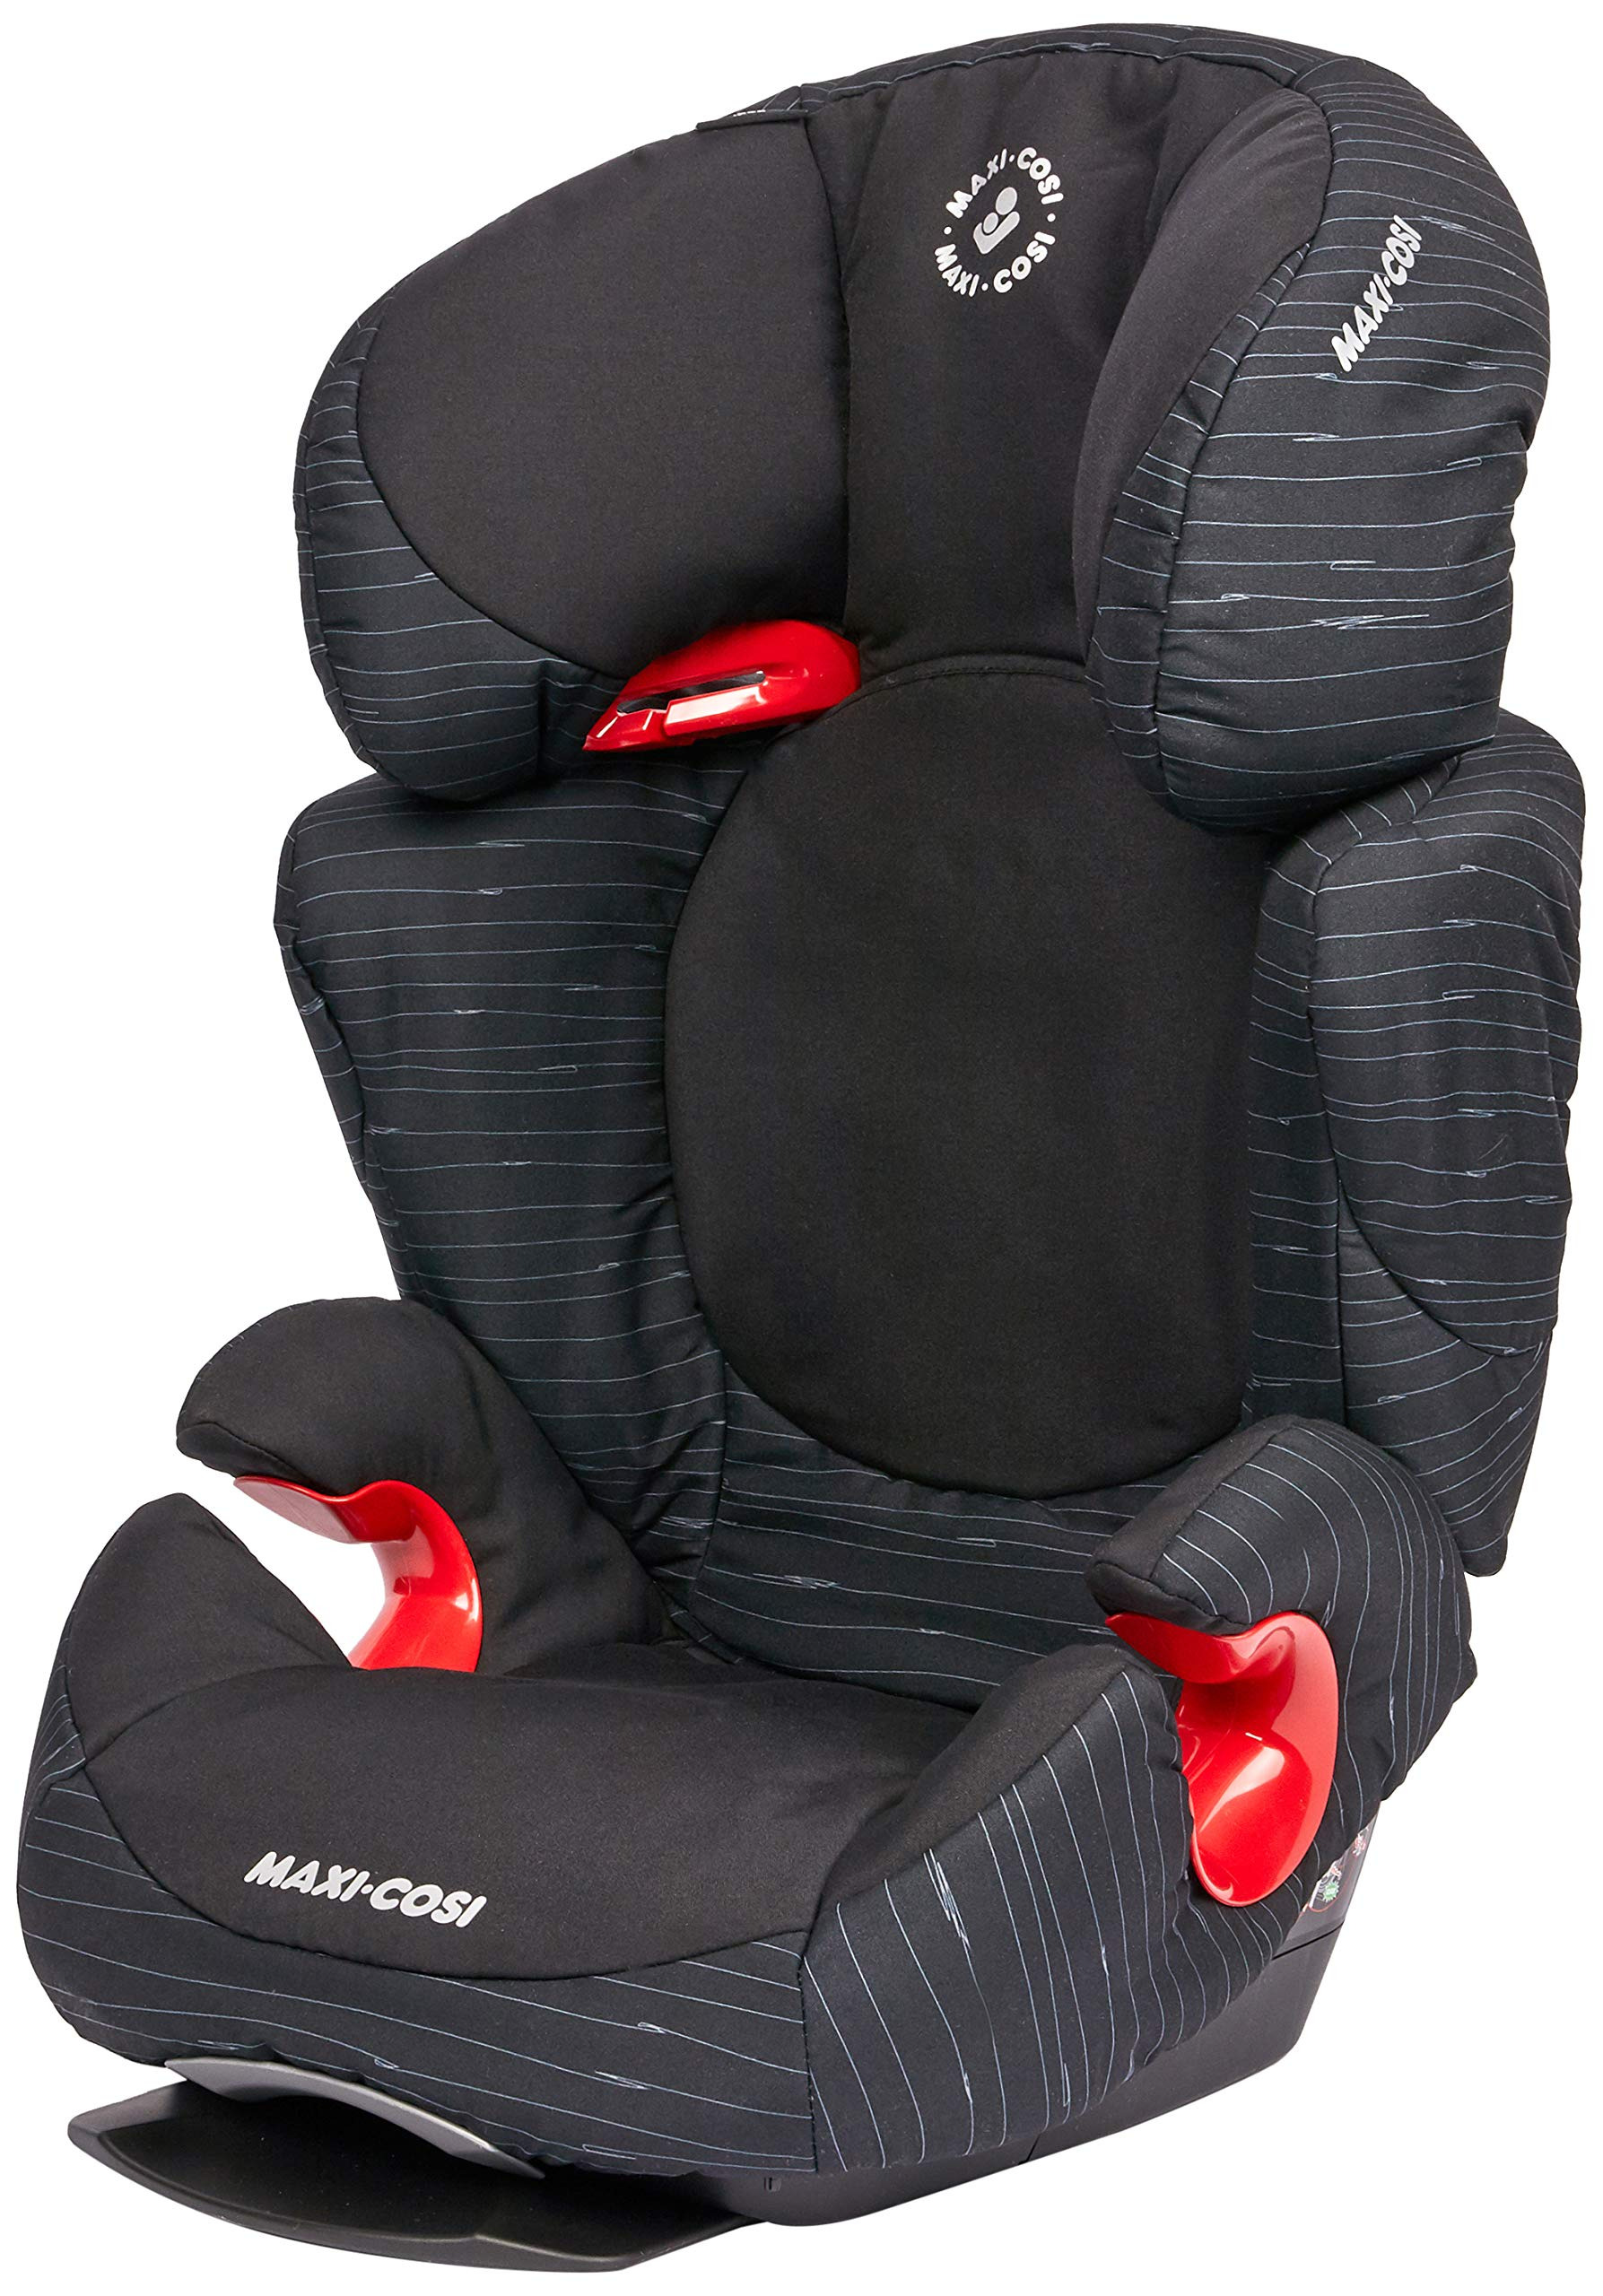 Maxi-Cosi Rodi AirProtect Child Car Seat, Lightweight Highback Booster, 3.5-12 Years, 15-36 kg, Scribble Black Maxi-Cosi Child car seat, suitable from 3.5 to 12 years (15 - 36kg) Easily install this safe car seat with a 3-point seat belt and attach the anchorage point in the head rest through your cars head rest Patented air protect technology in headrest reduces the risk of head and neck injuries up to 20 percent 1